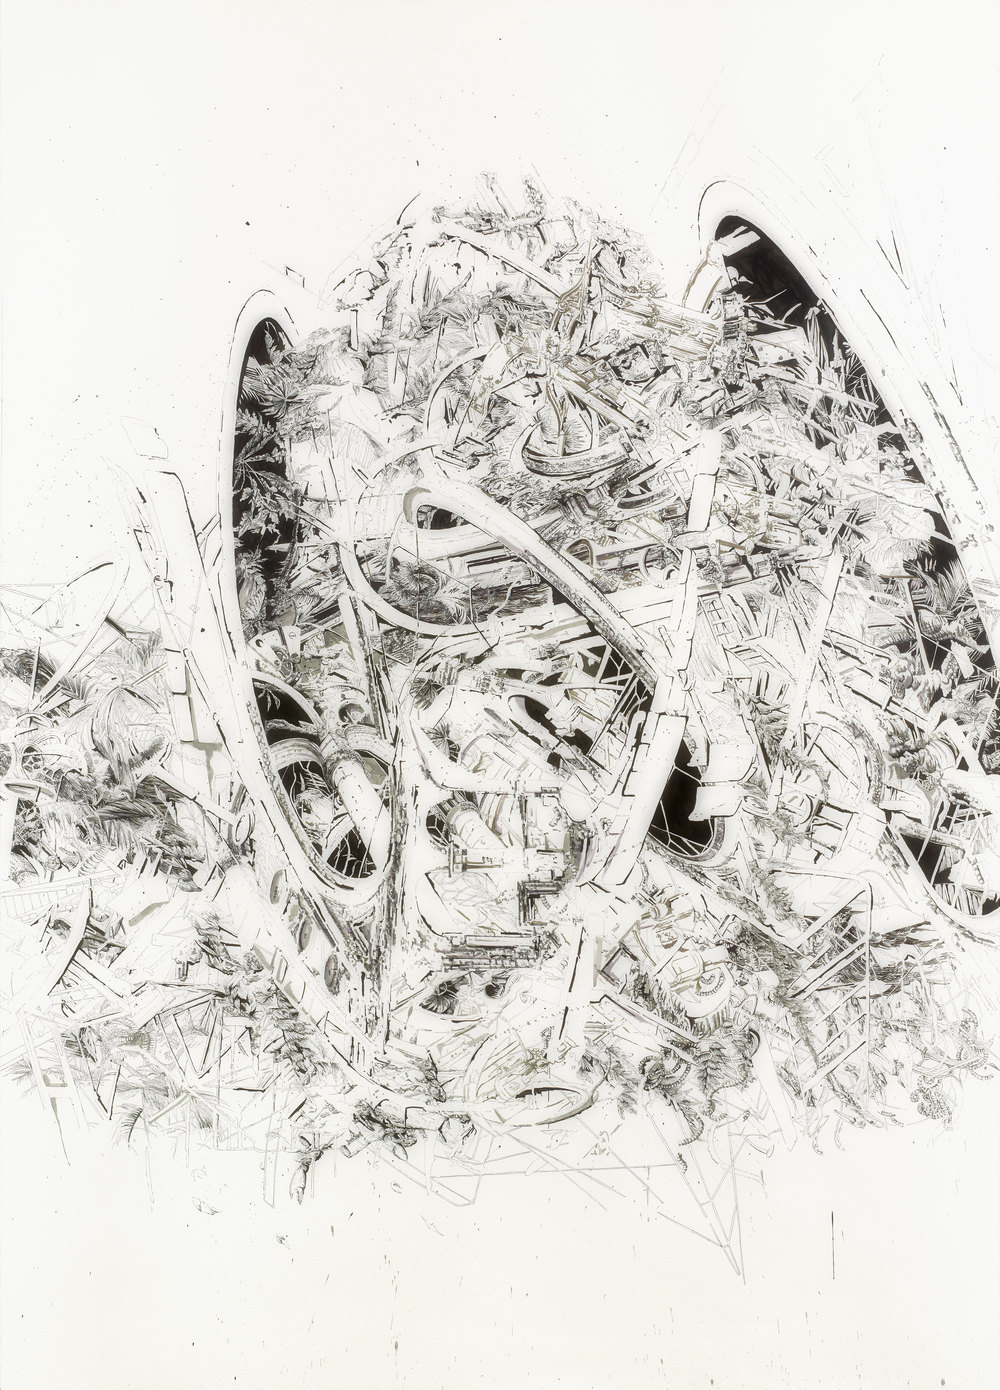 Bettina Krieg | Pxxx Untitled | Triptych B | Ink & Graphit on Paper | 270x190cm | 2012